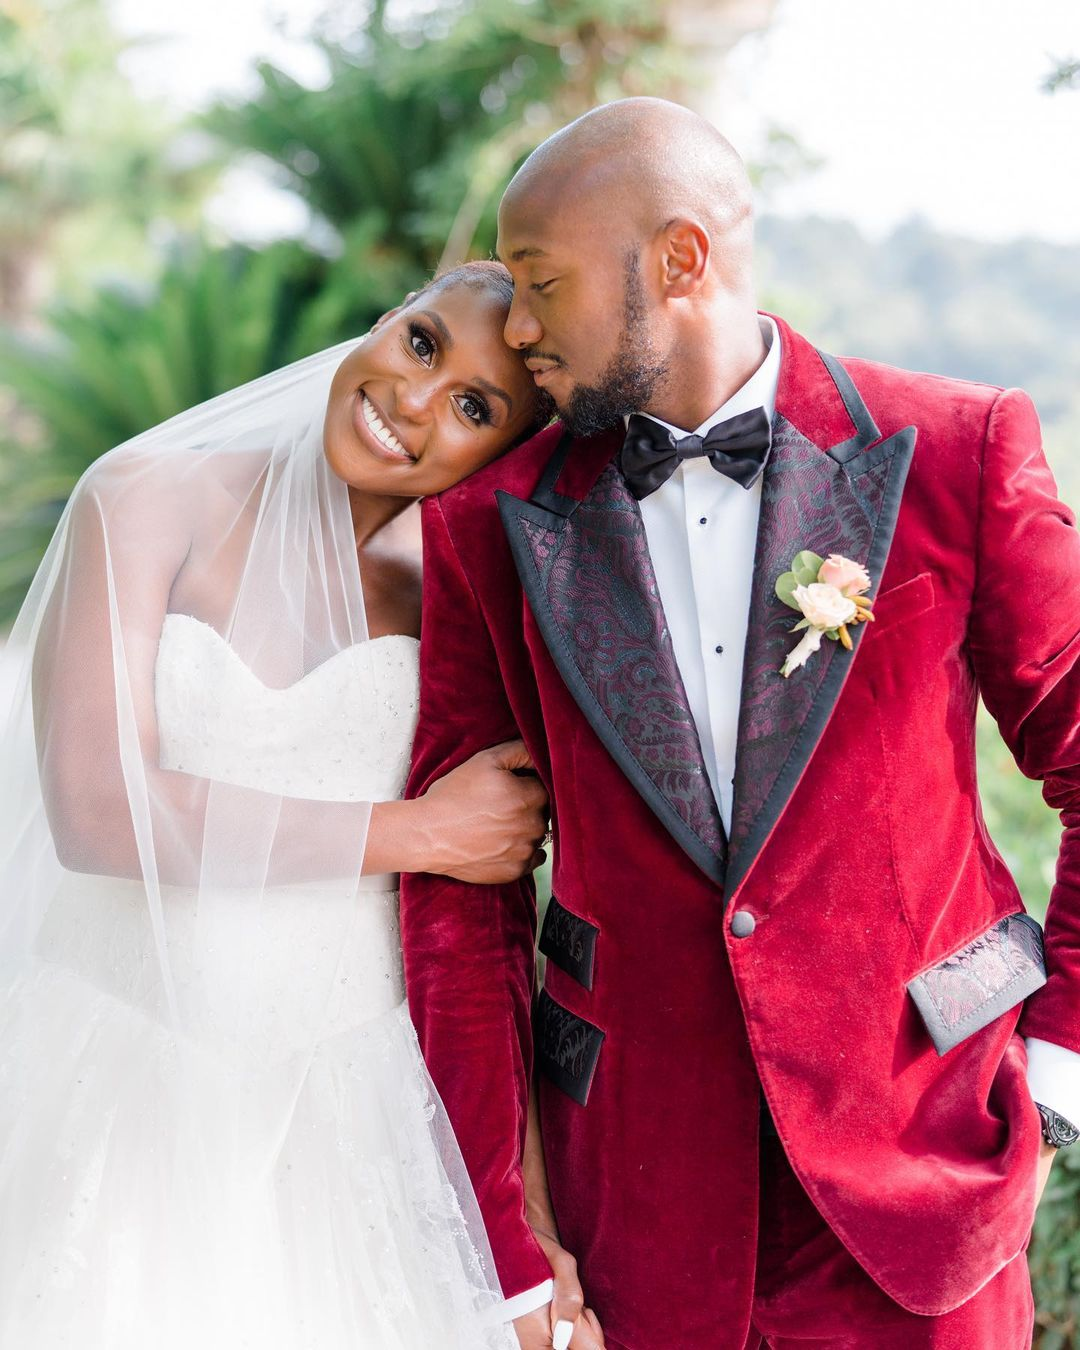 Issa Rae Marries Longtime Boyfriend Louis Diame in 'Real and Special' Wedding in South of France